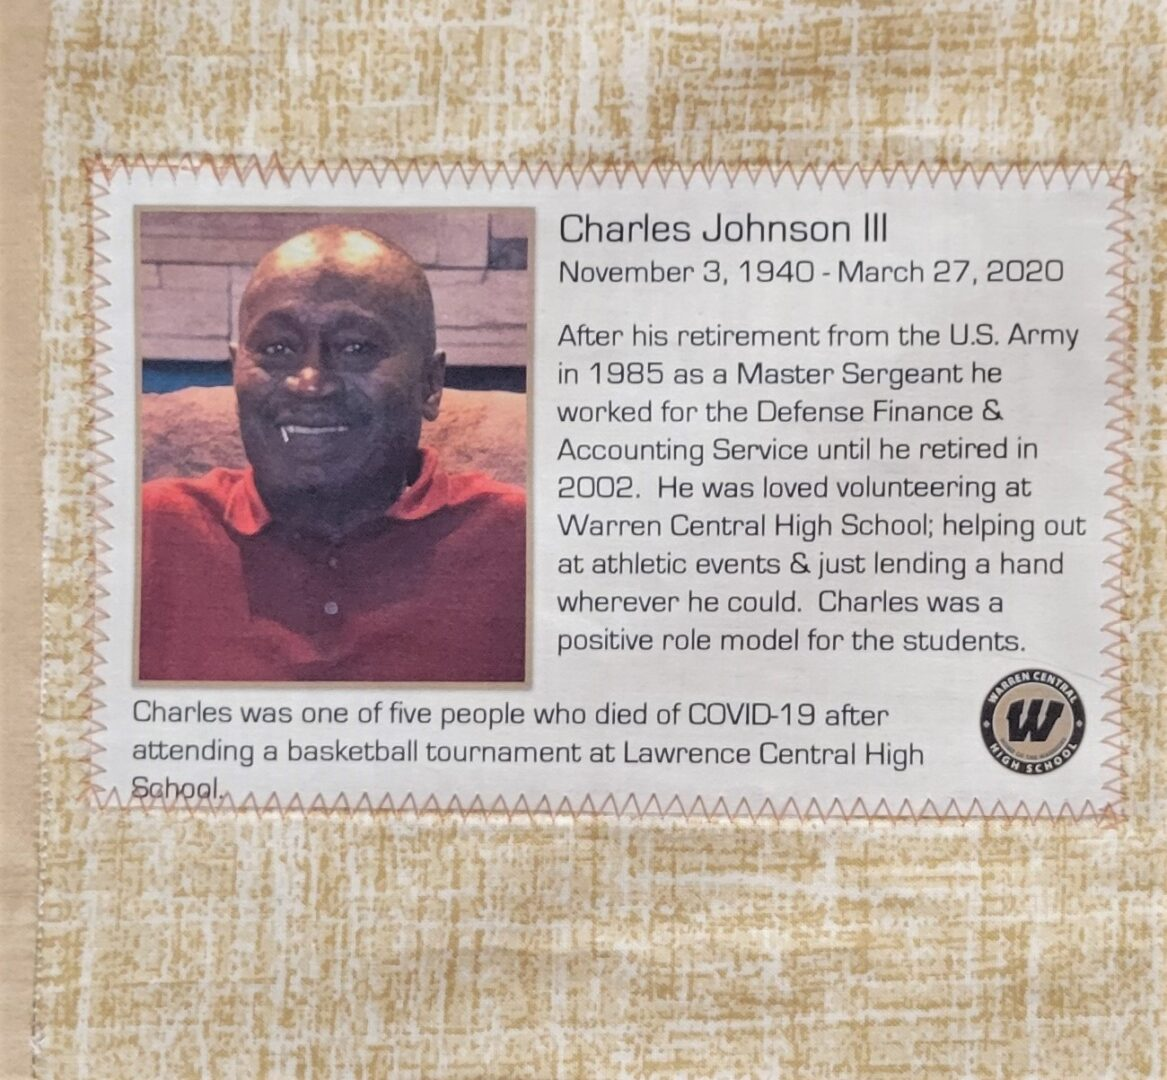 IN MEMORY OF CHARLES JOHNSON III - NOVEMBER 3, 1940 - MARCH 27, 2020